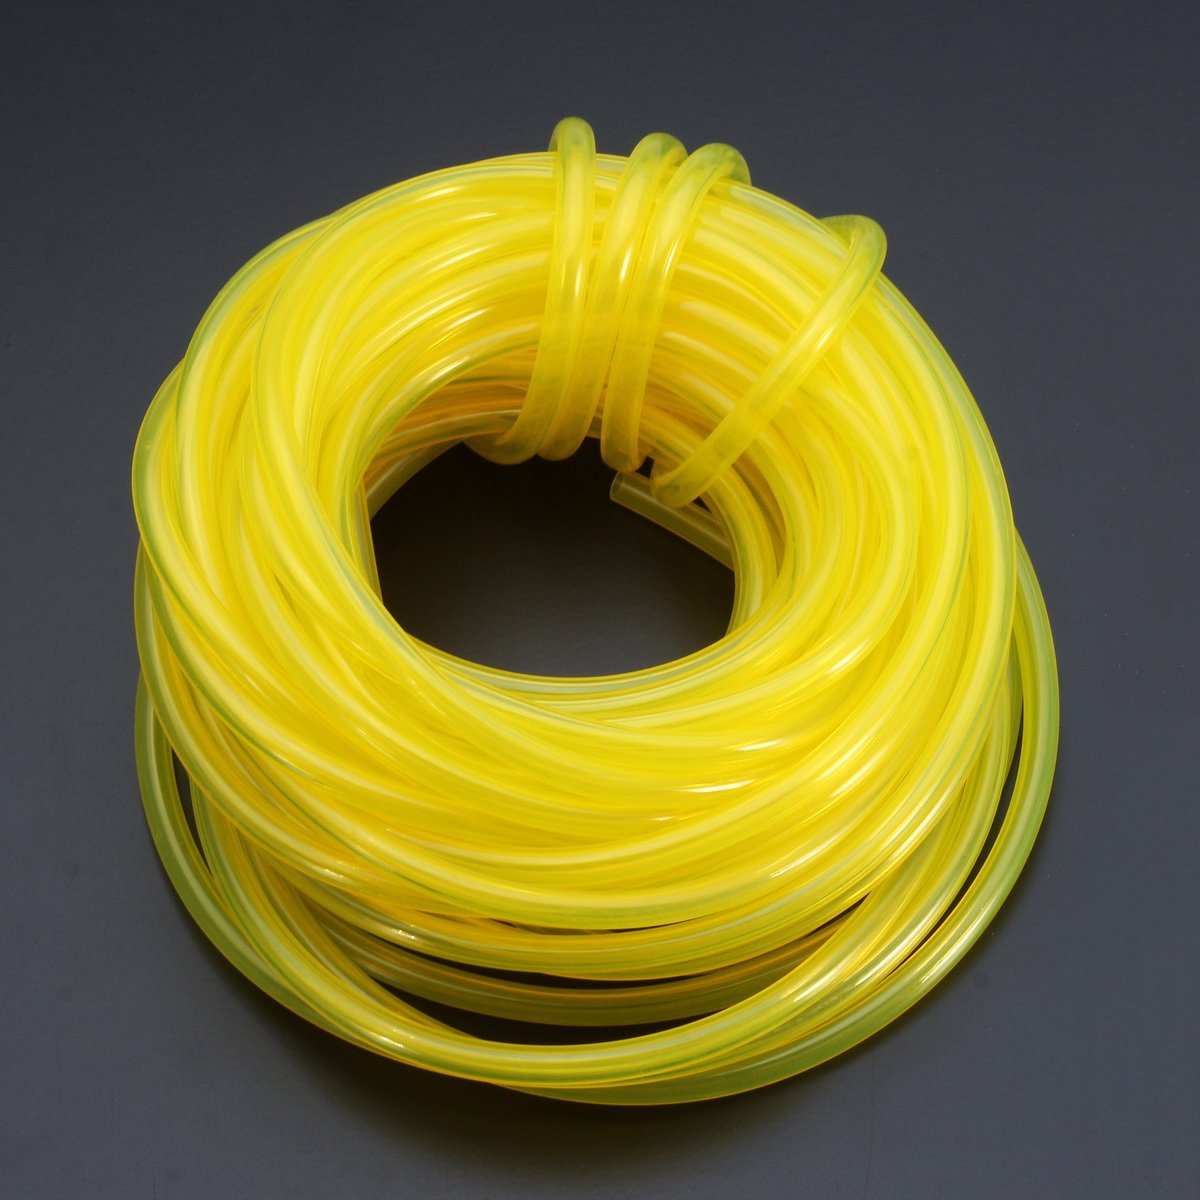 SummerHome 32.8Ft 10M Tygon Petrol Fuel Gas Line Pipe Hose - I.D 1/8'' O.D 3/16''(3mm x 5mm) by SummerHome (Image #3)